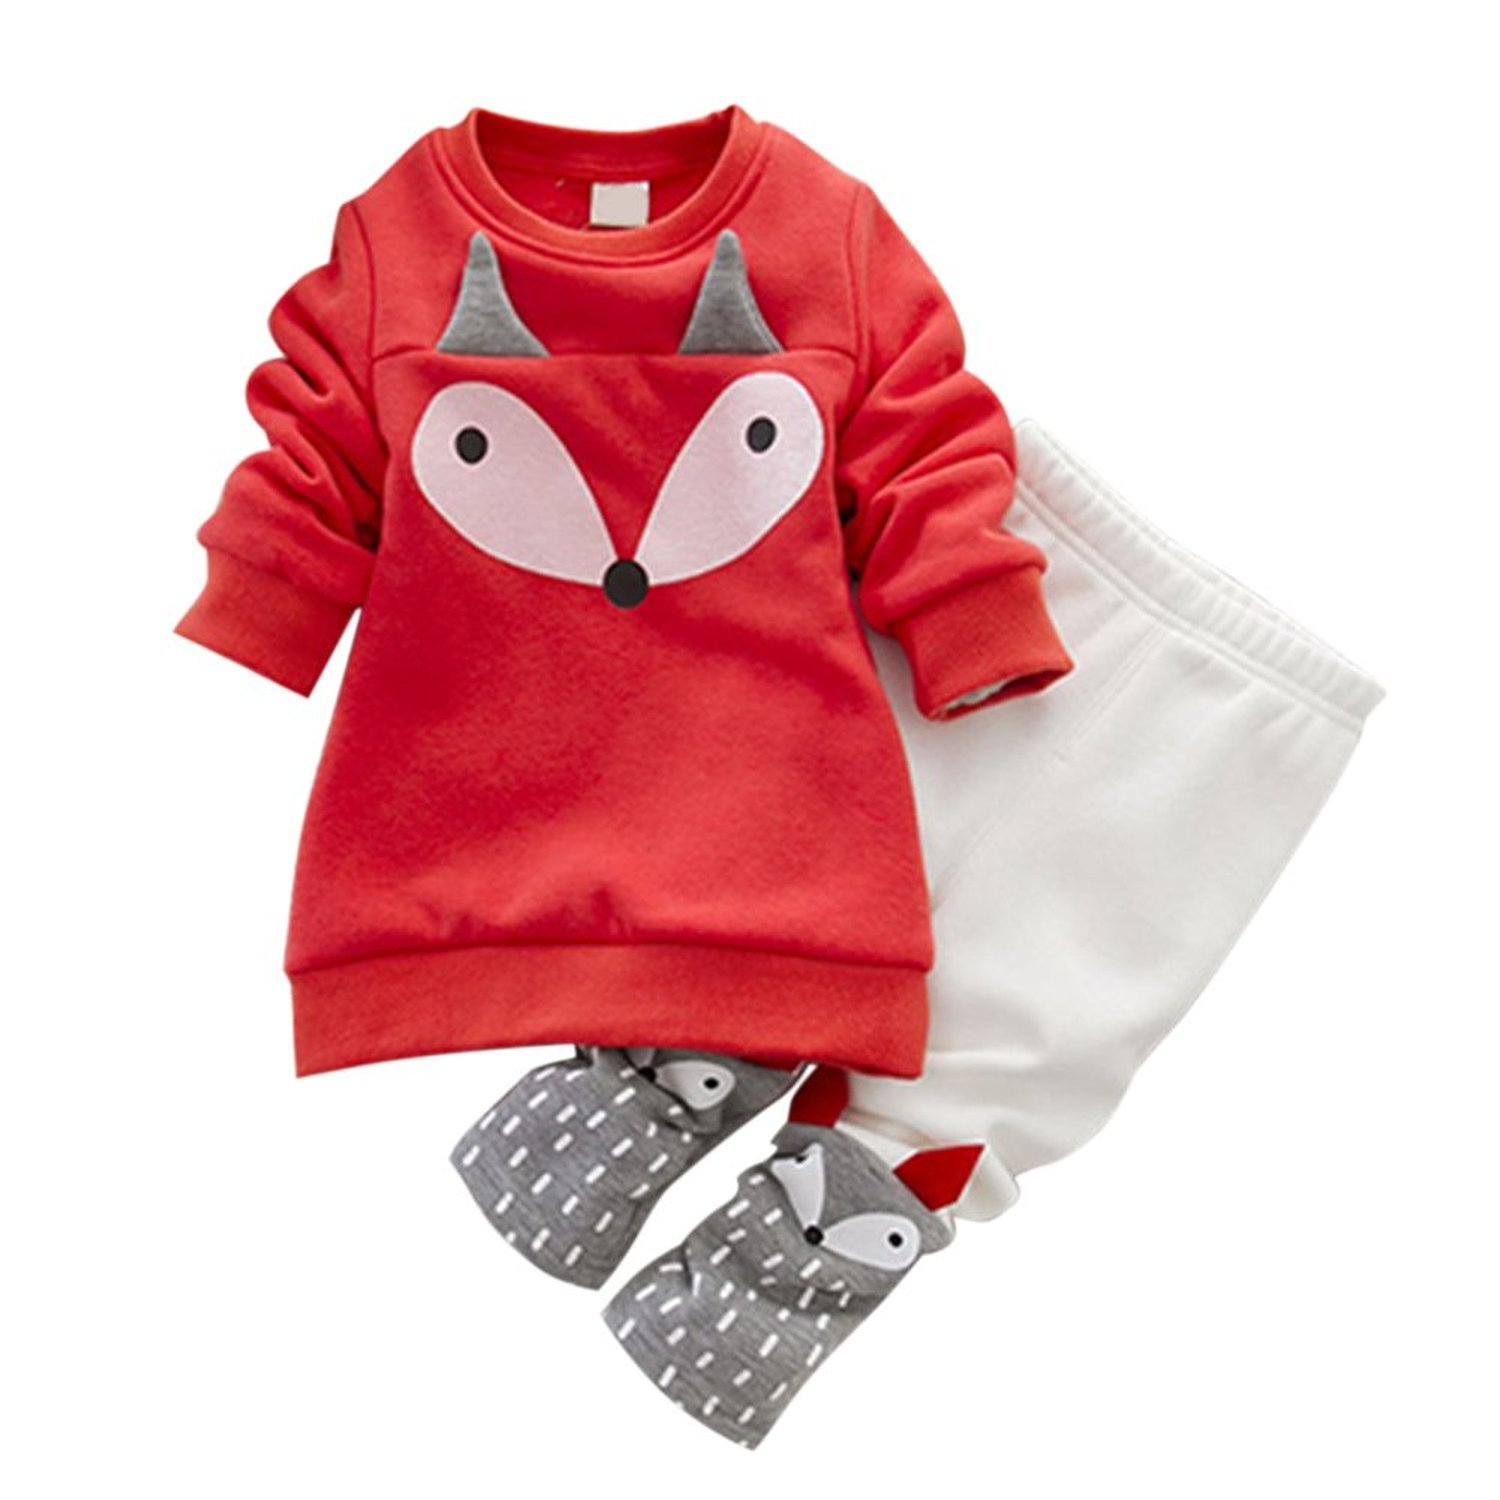 LUKYCILD Baby Girl Cartoon Sweater Suit Long Sleeve Velvet Top Pant Set, Red, 2T/3T / Tag Size 100 by LUKYCILD (Image #1)